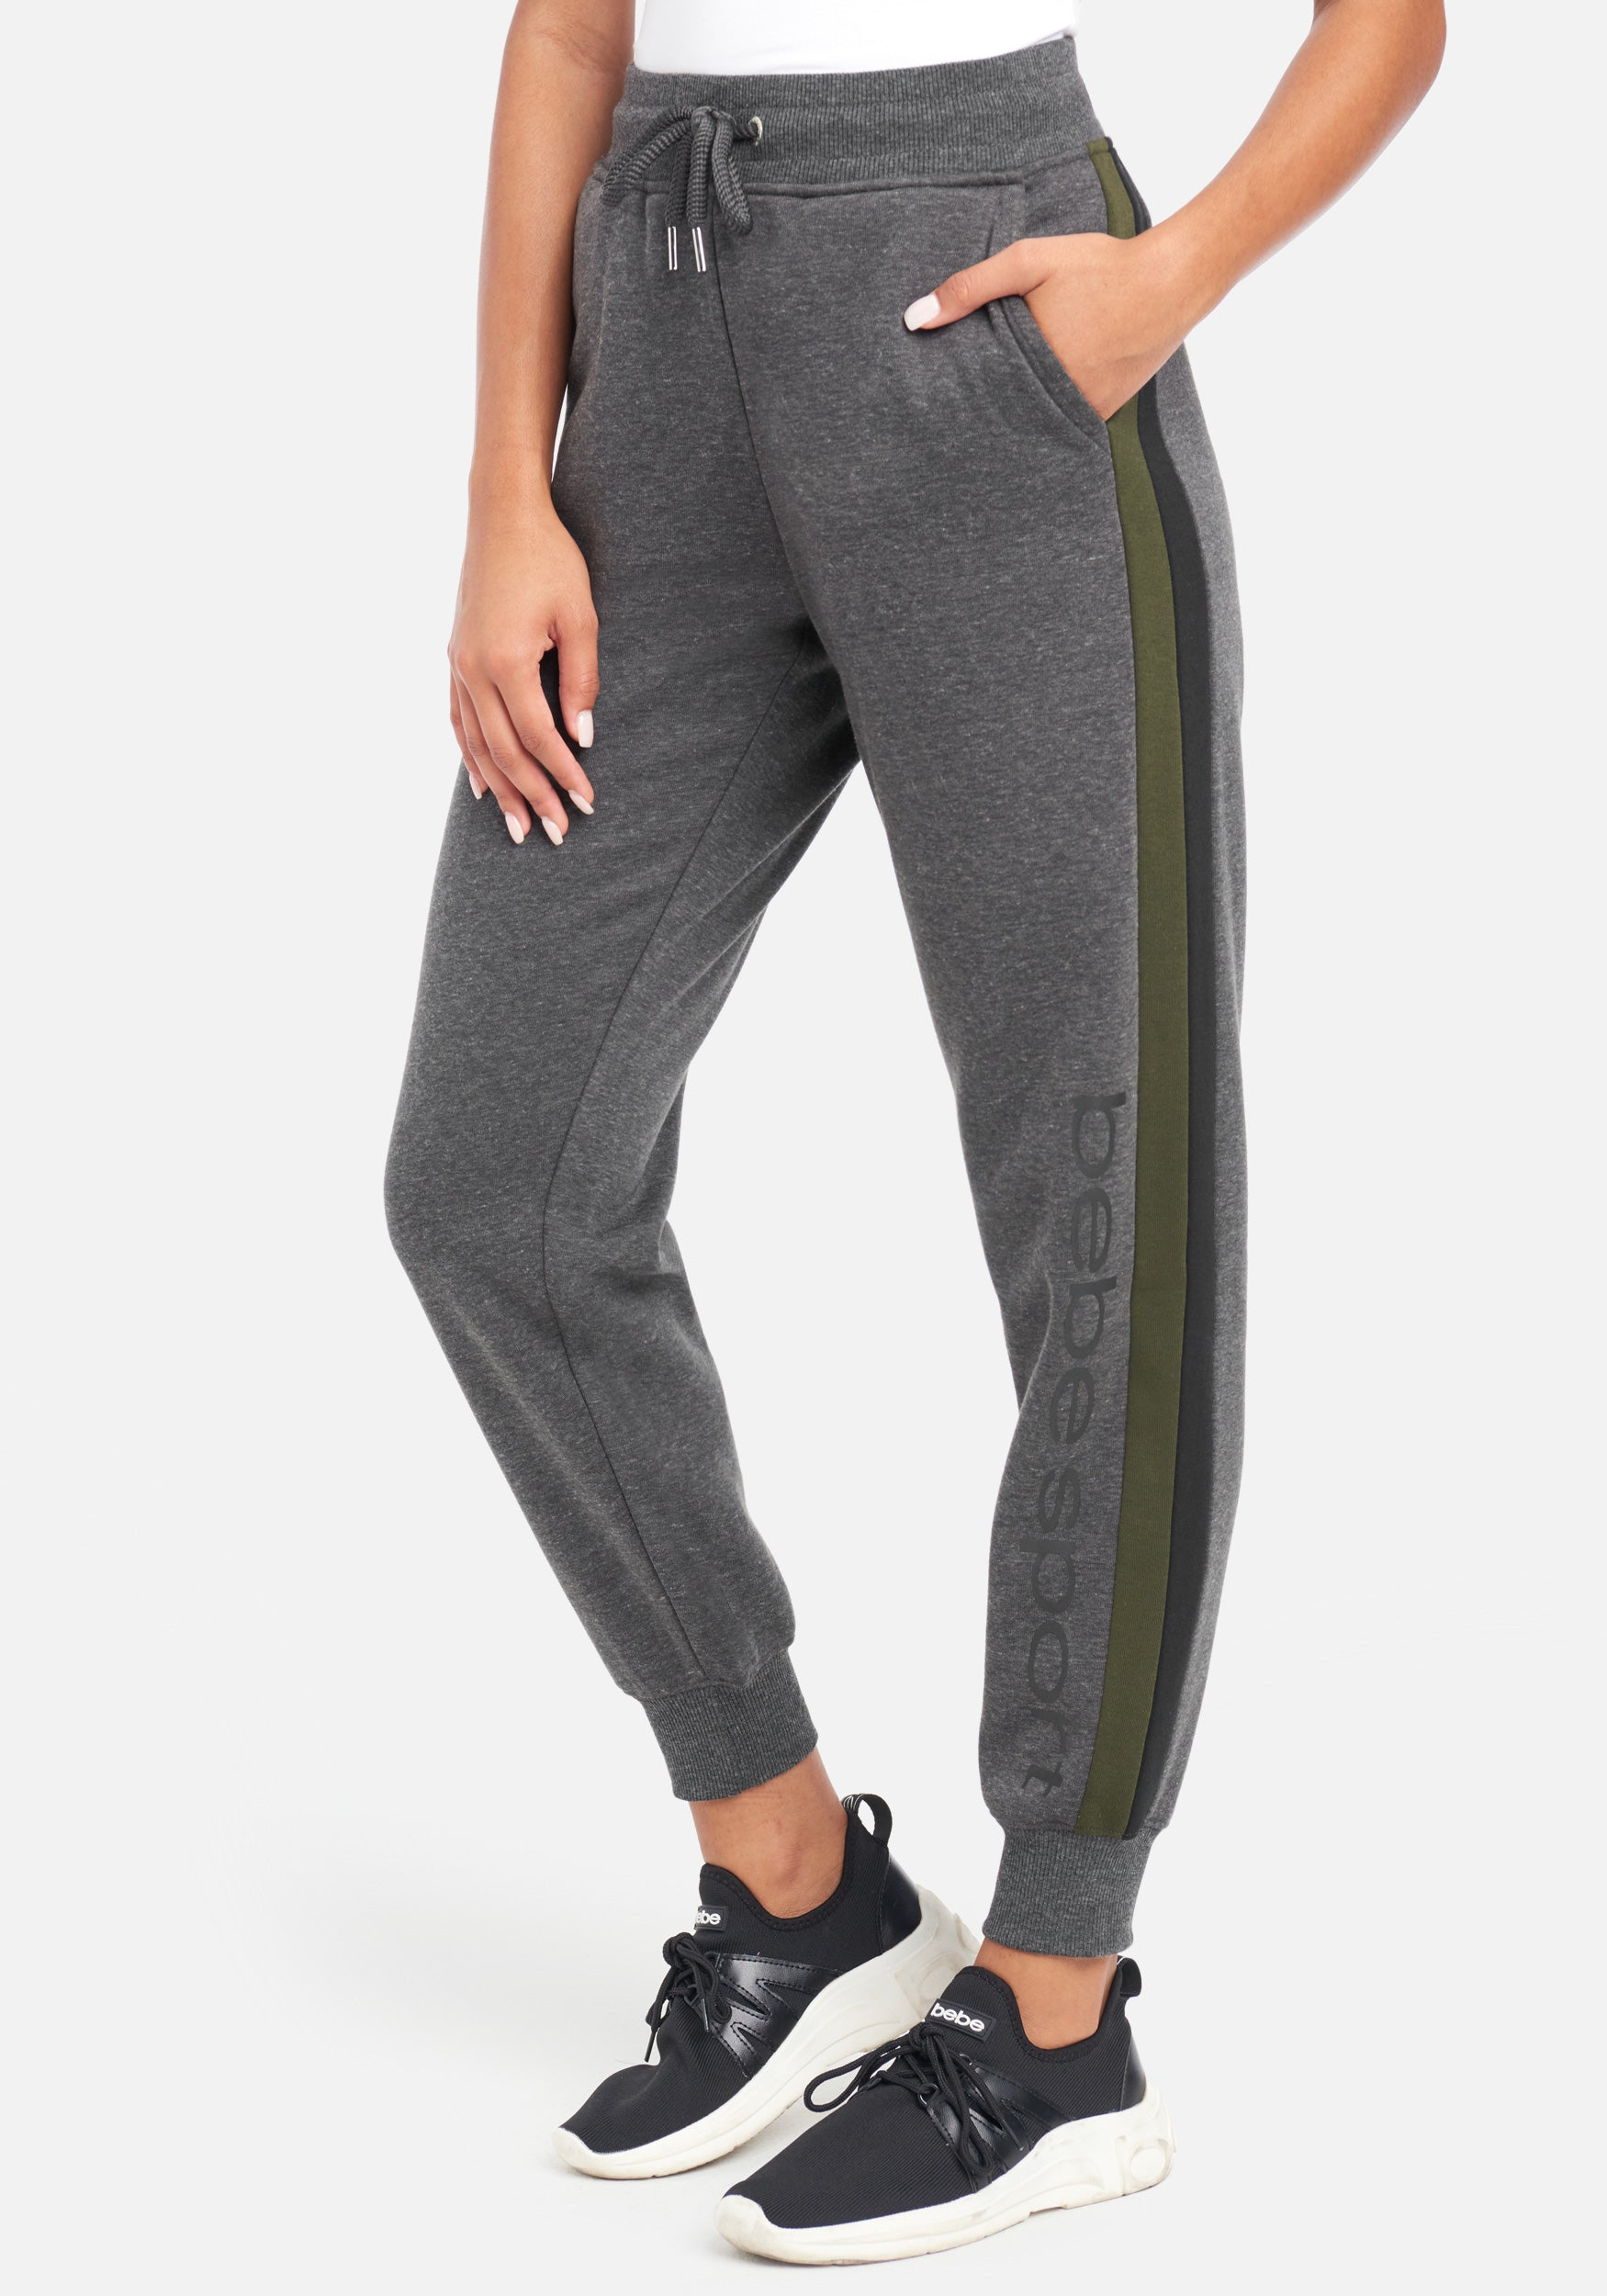 Women's Bebe Sport Color Stripe Jogger Pant, Size Small in Charcoal Grey